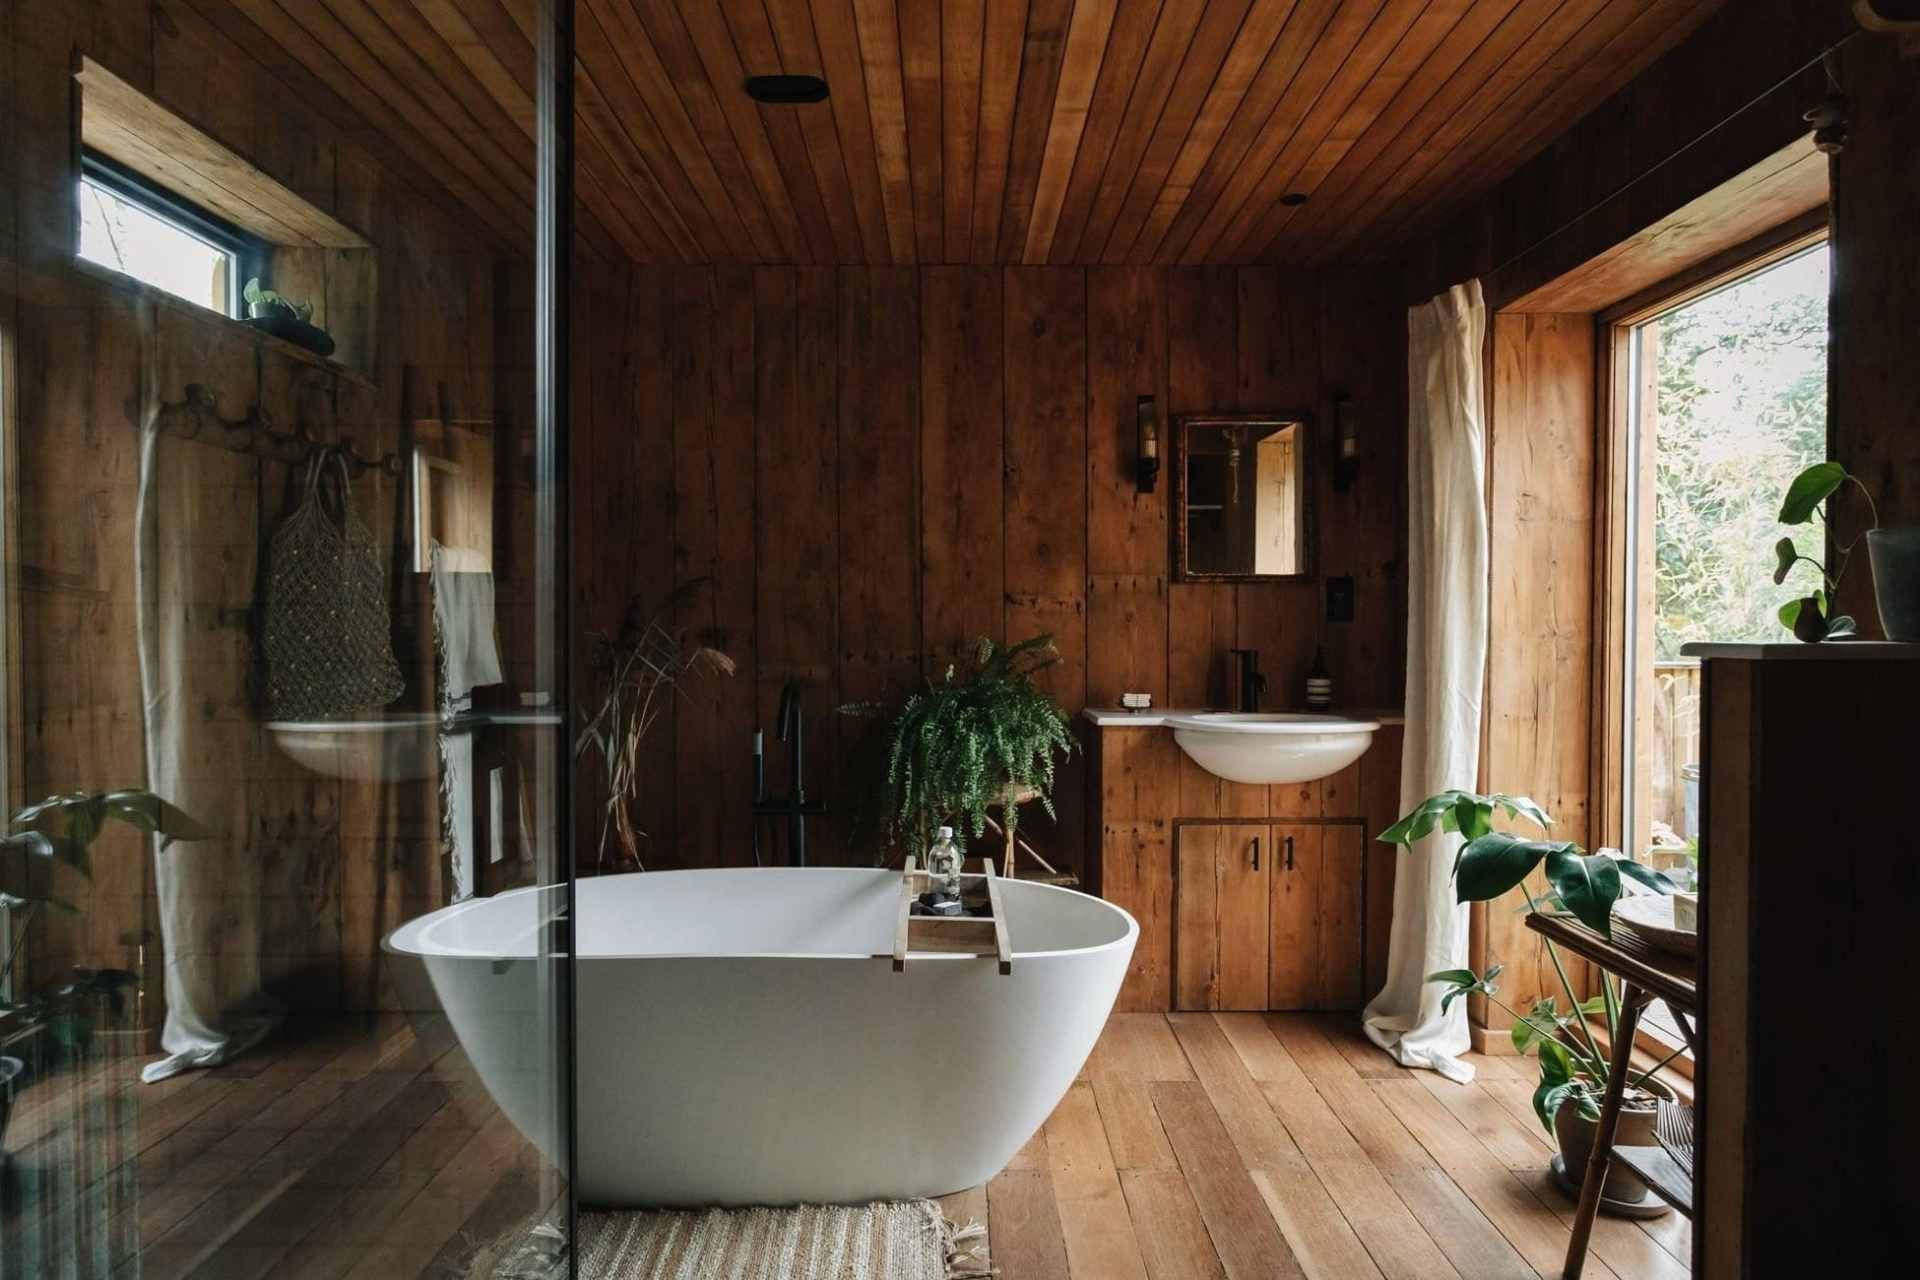 white-freestanding-bath-in-wooden-cabin-with-lots-of-green-plants-settle-cabin-norfolk-glamping